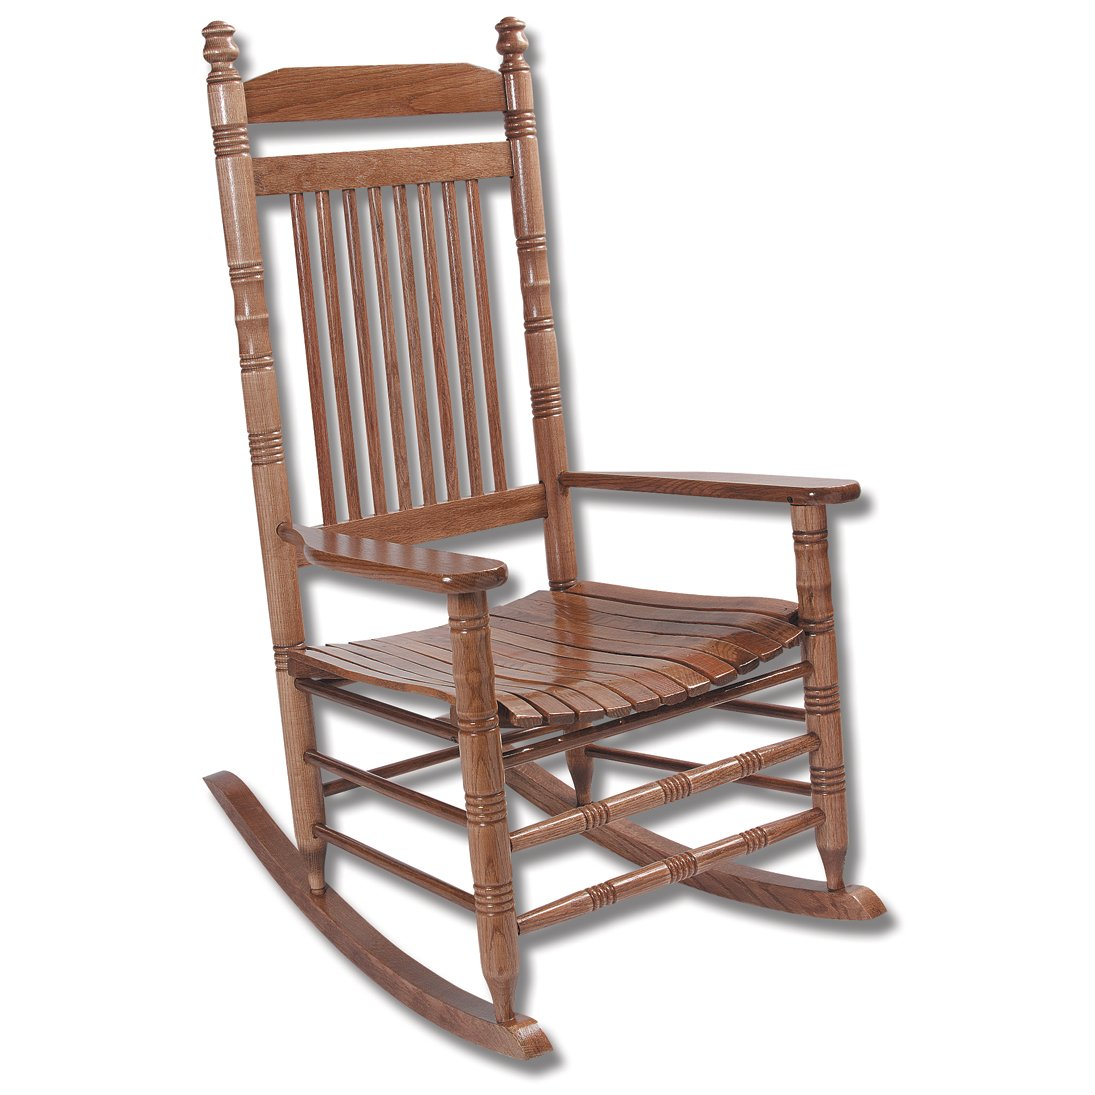 Cheap Rocking Chairs Hardwood Slat Rocking Chair Fully Assembled